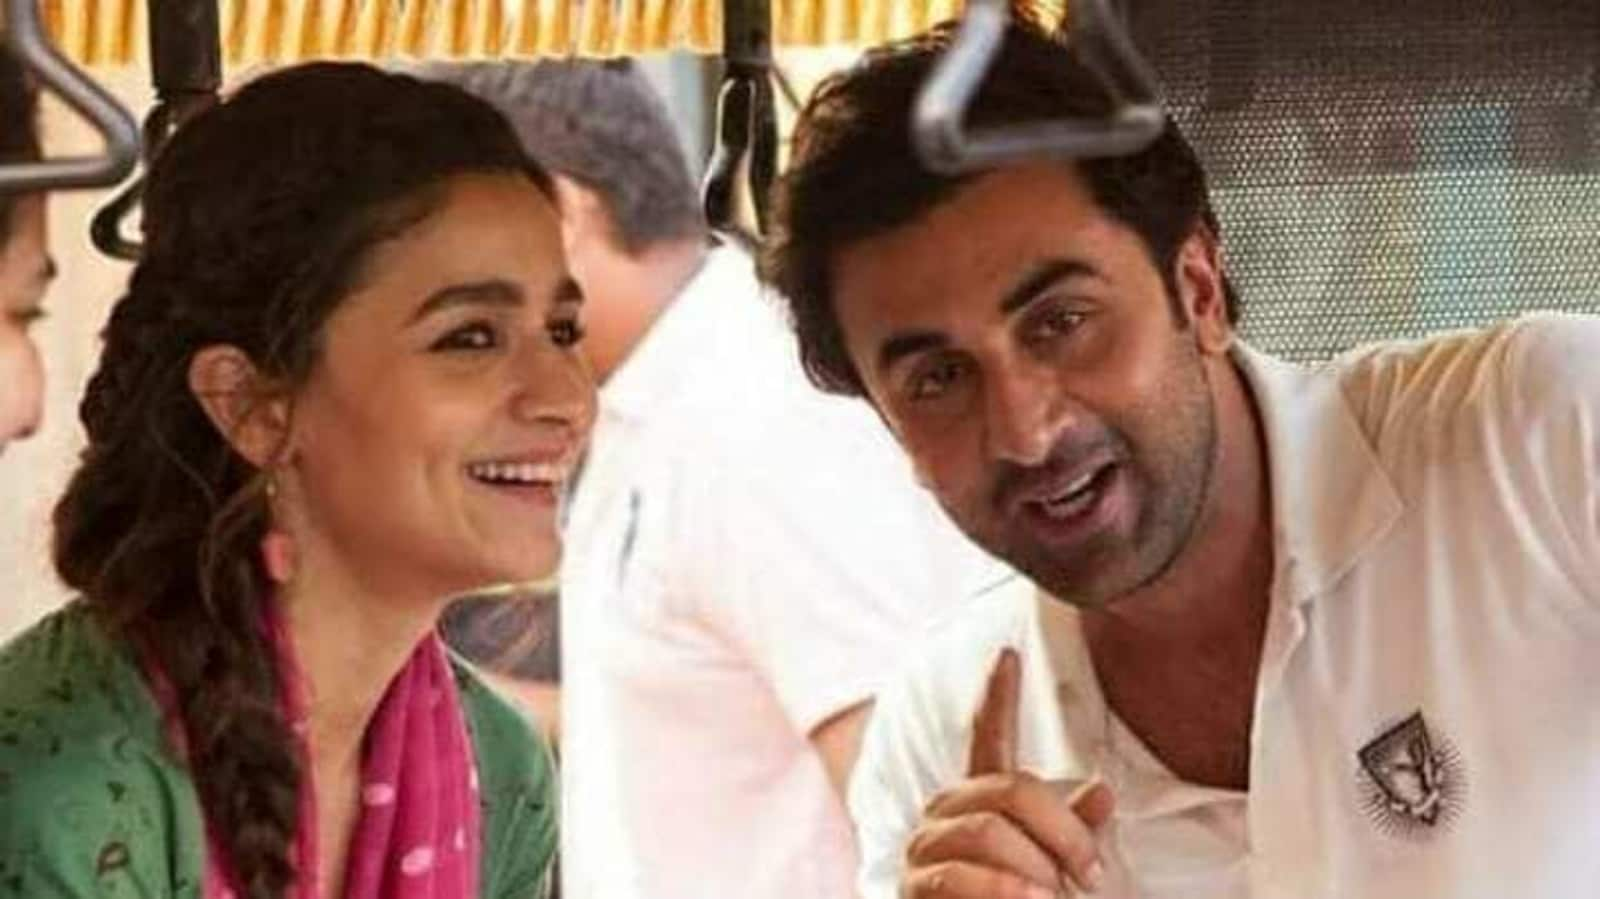 Ranbir Kapoor, Alia Bhatt are lost in love and laughter at ad shoot. See photos - Hindustan Times